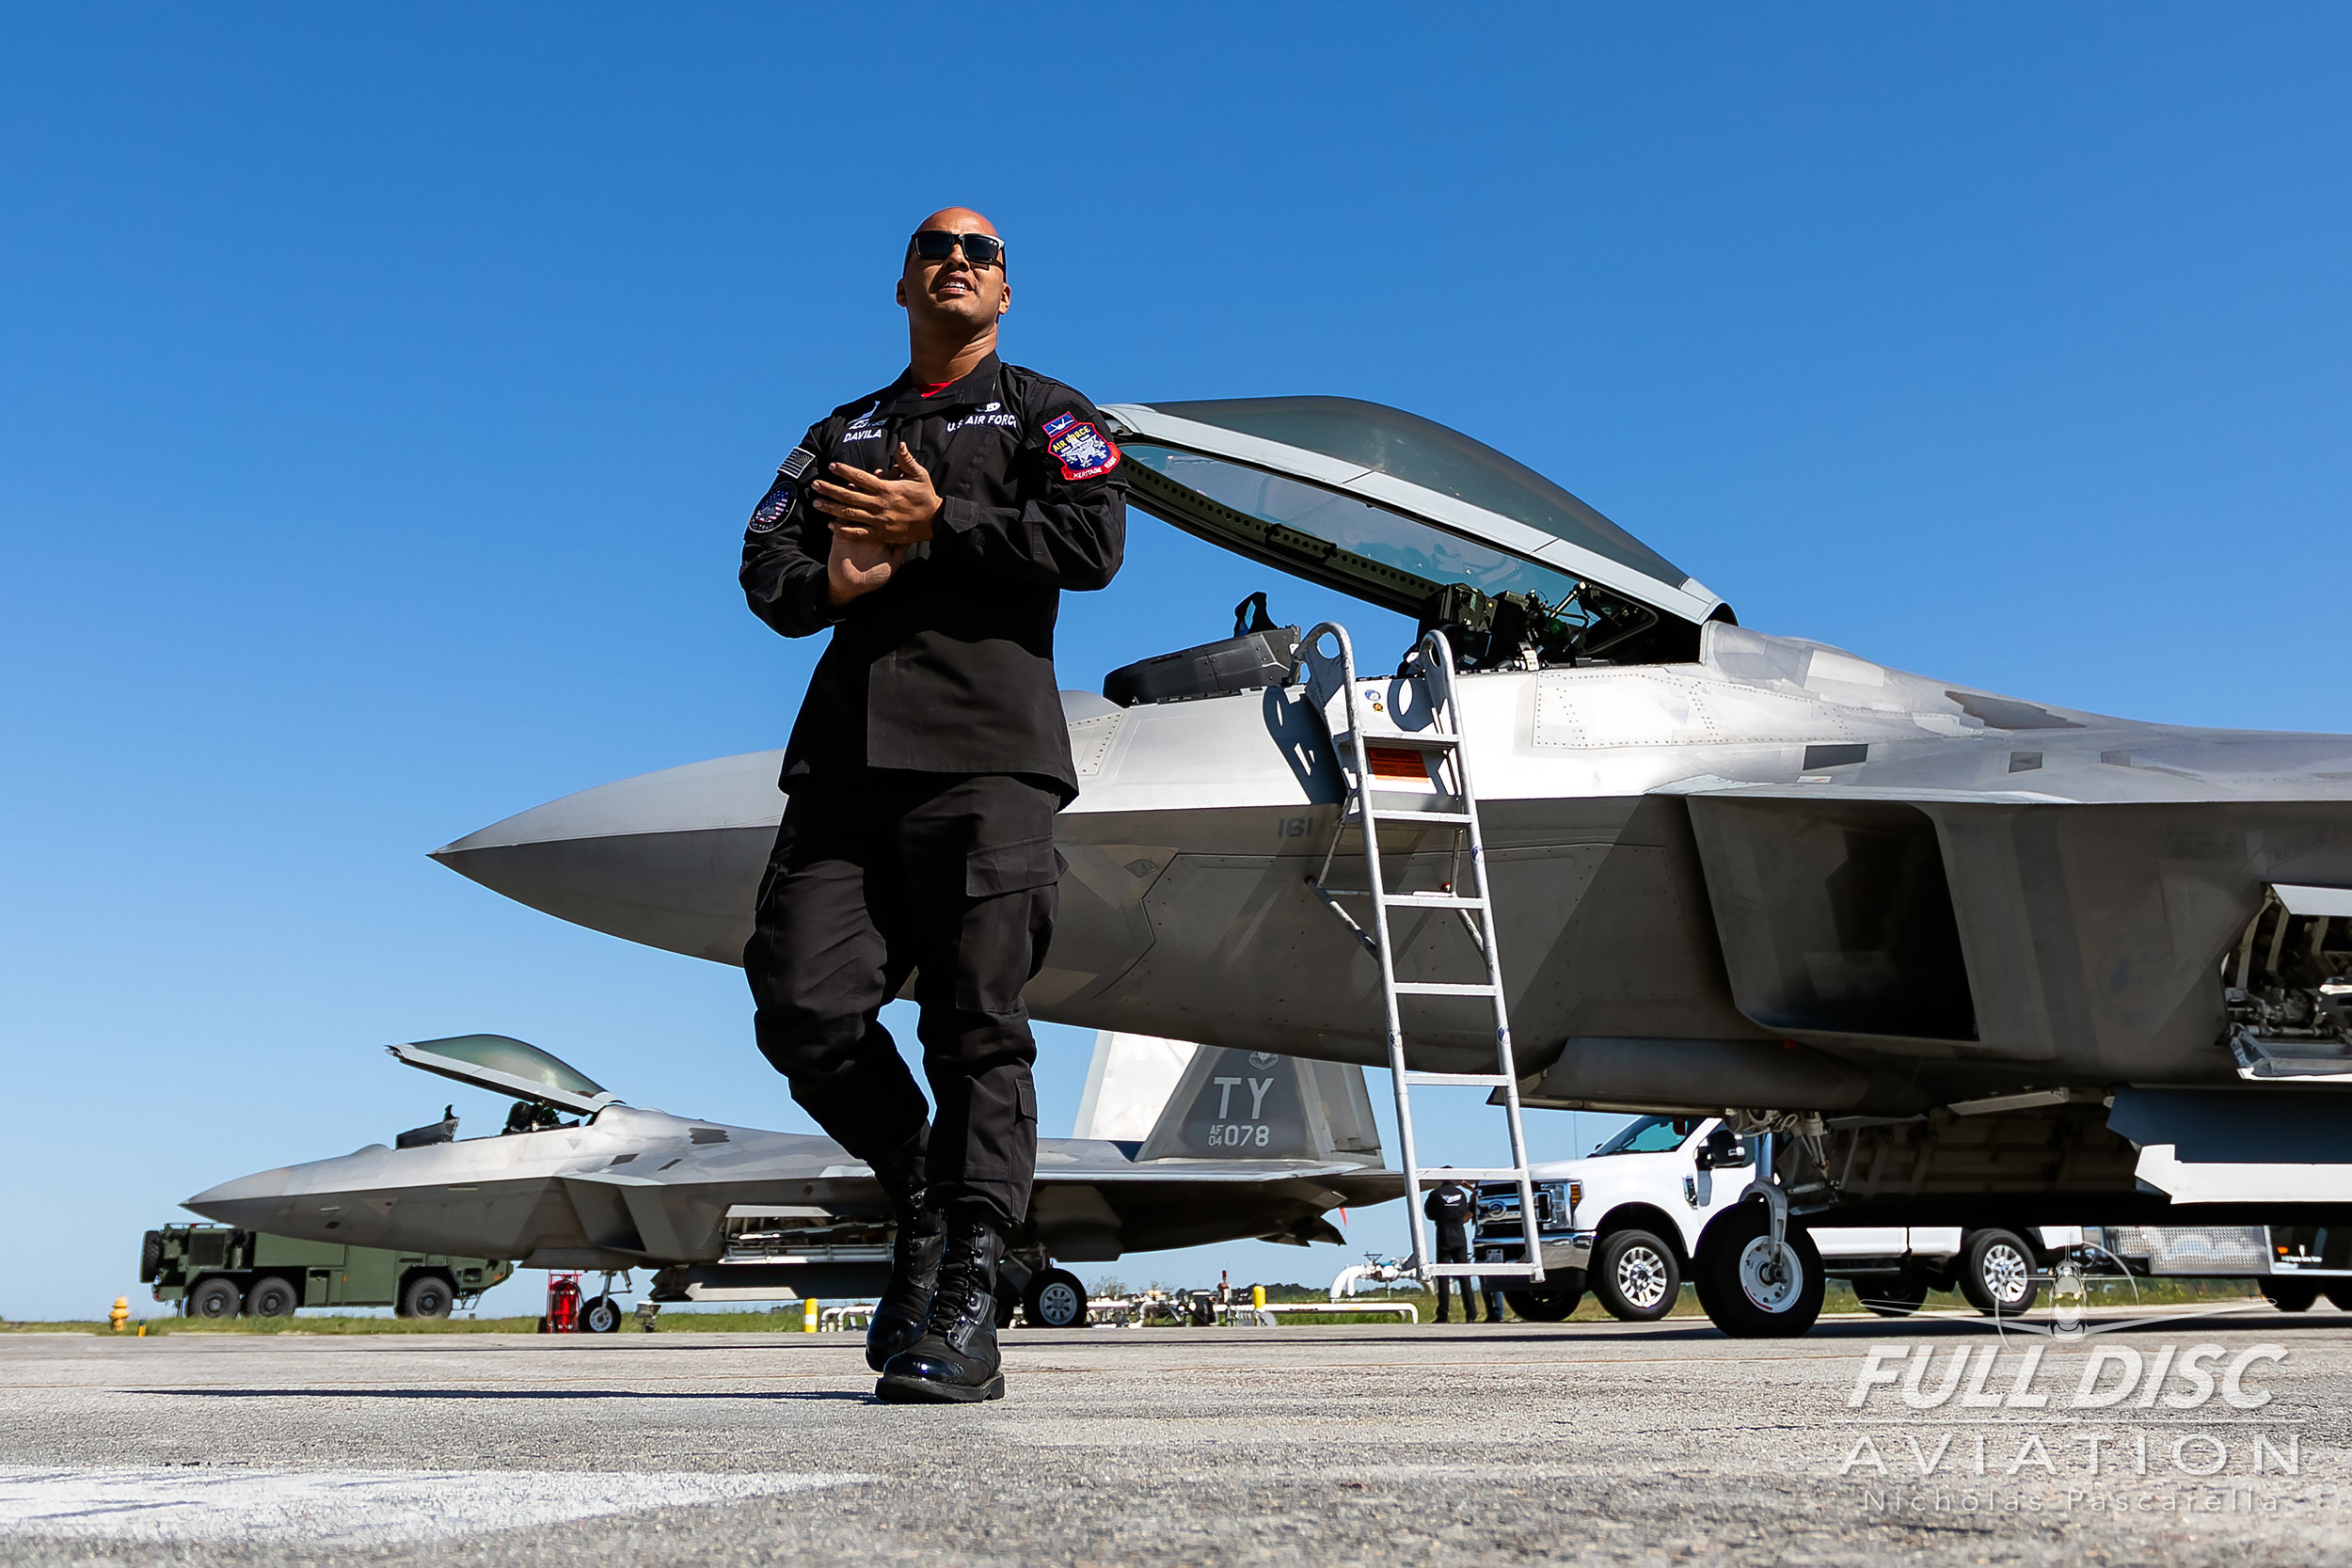 groundcrew_f22raptor_mcasbeaufort_fulldiscaviation_nickpascarella.jpg